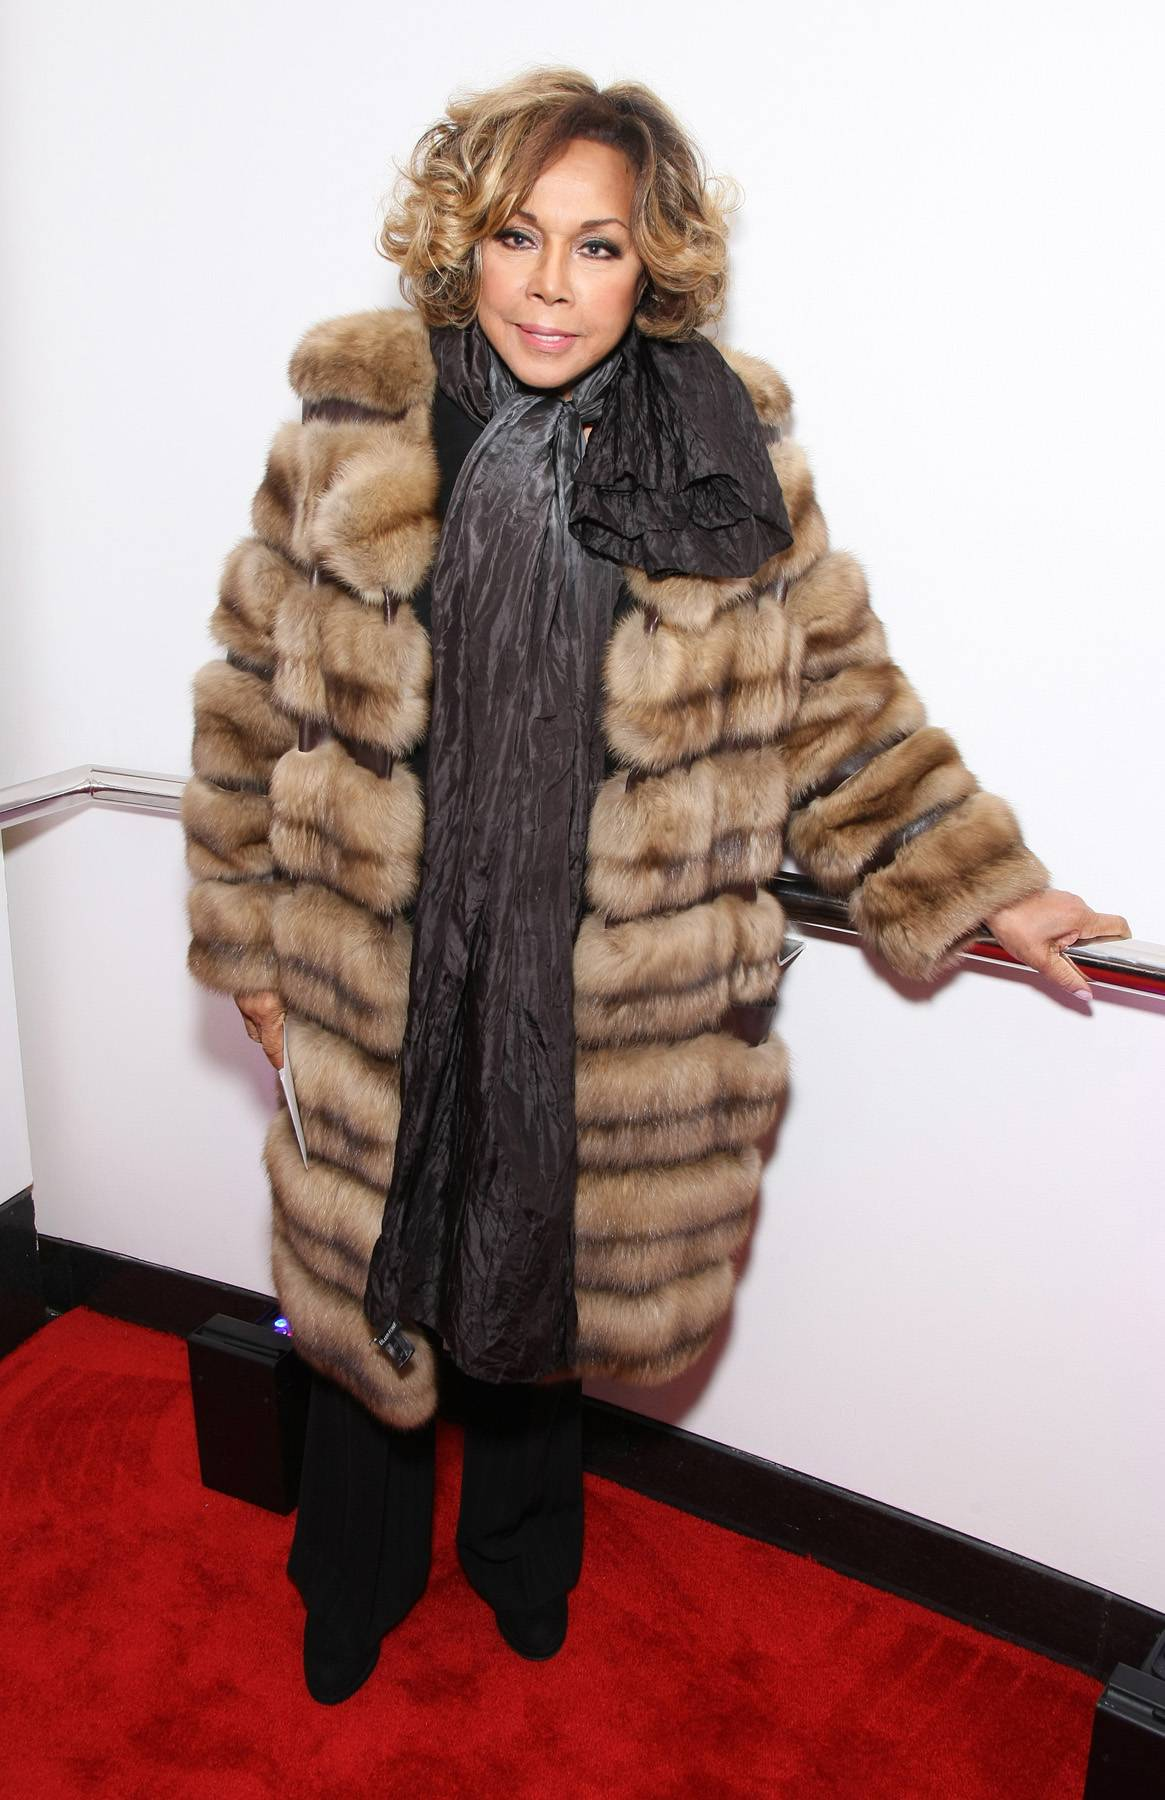 Royal Dynasty - Actress Diahann Carroll steps out on the carpet with her fur coat looking like she stepped right out of a scene from Dynasty. (Photo: Bennett Raglin/BET/Getty Images for BET)